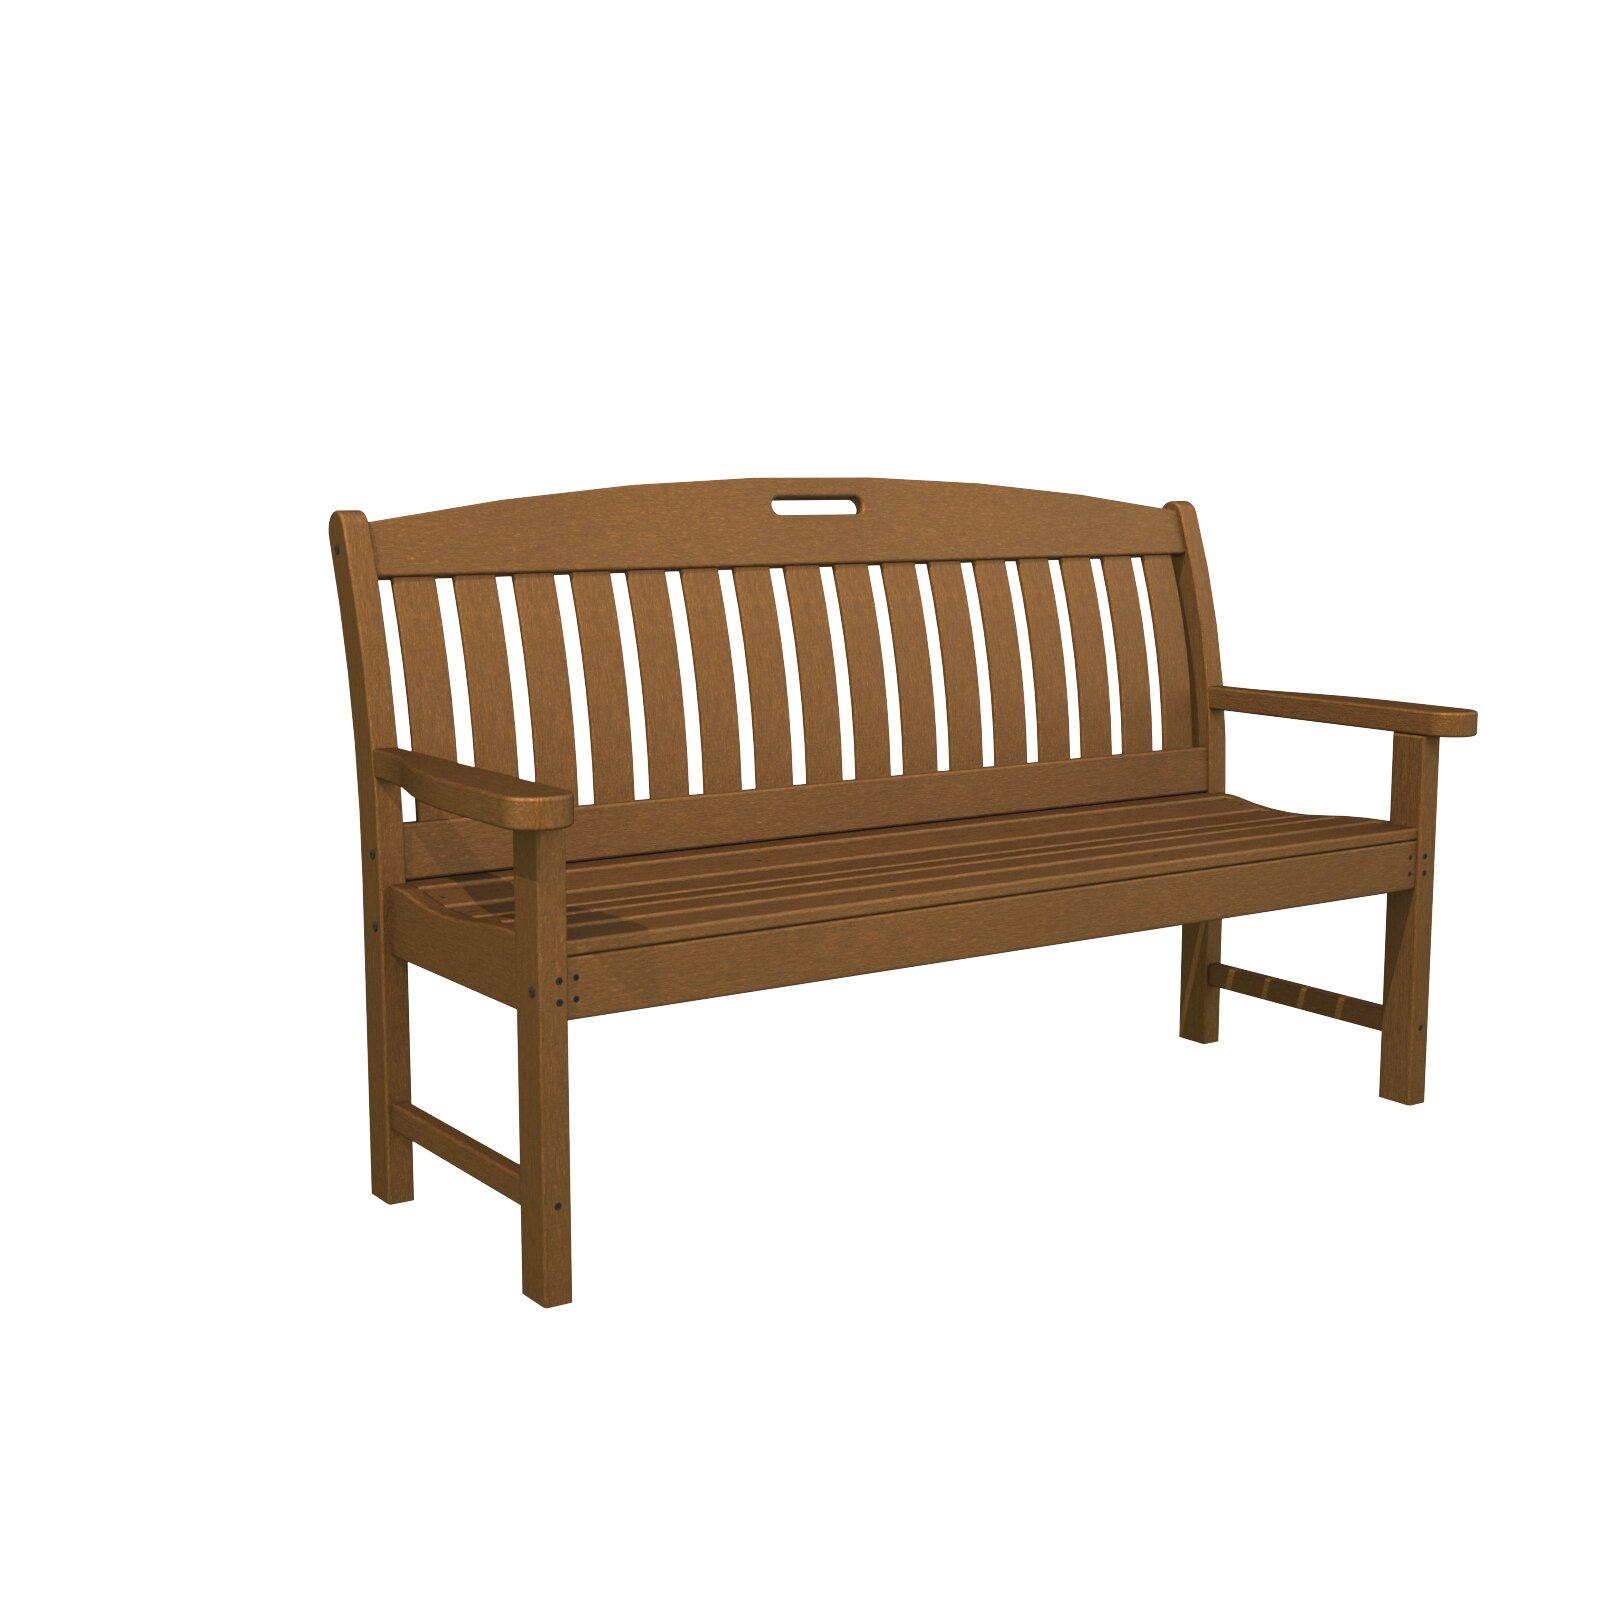 Polywood Nautical Plastic Garden Bench Reviews Wayfair